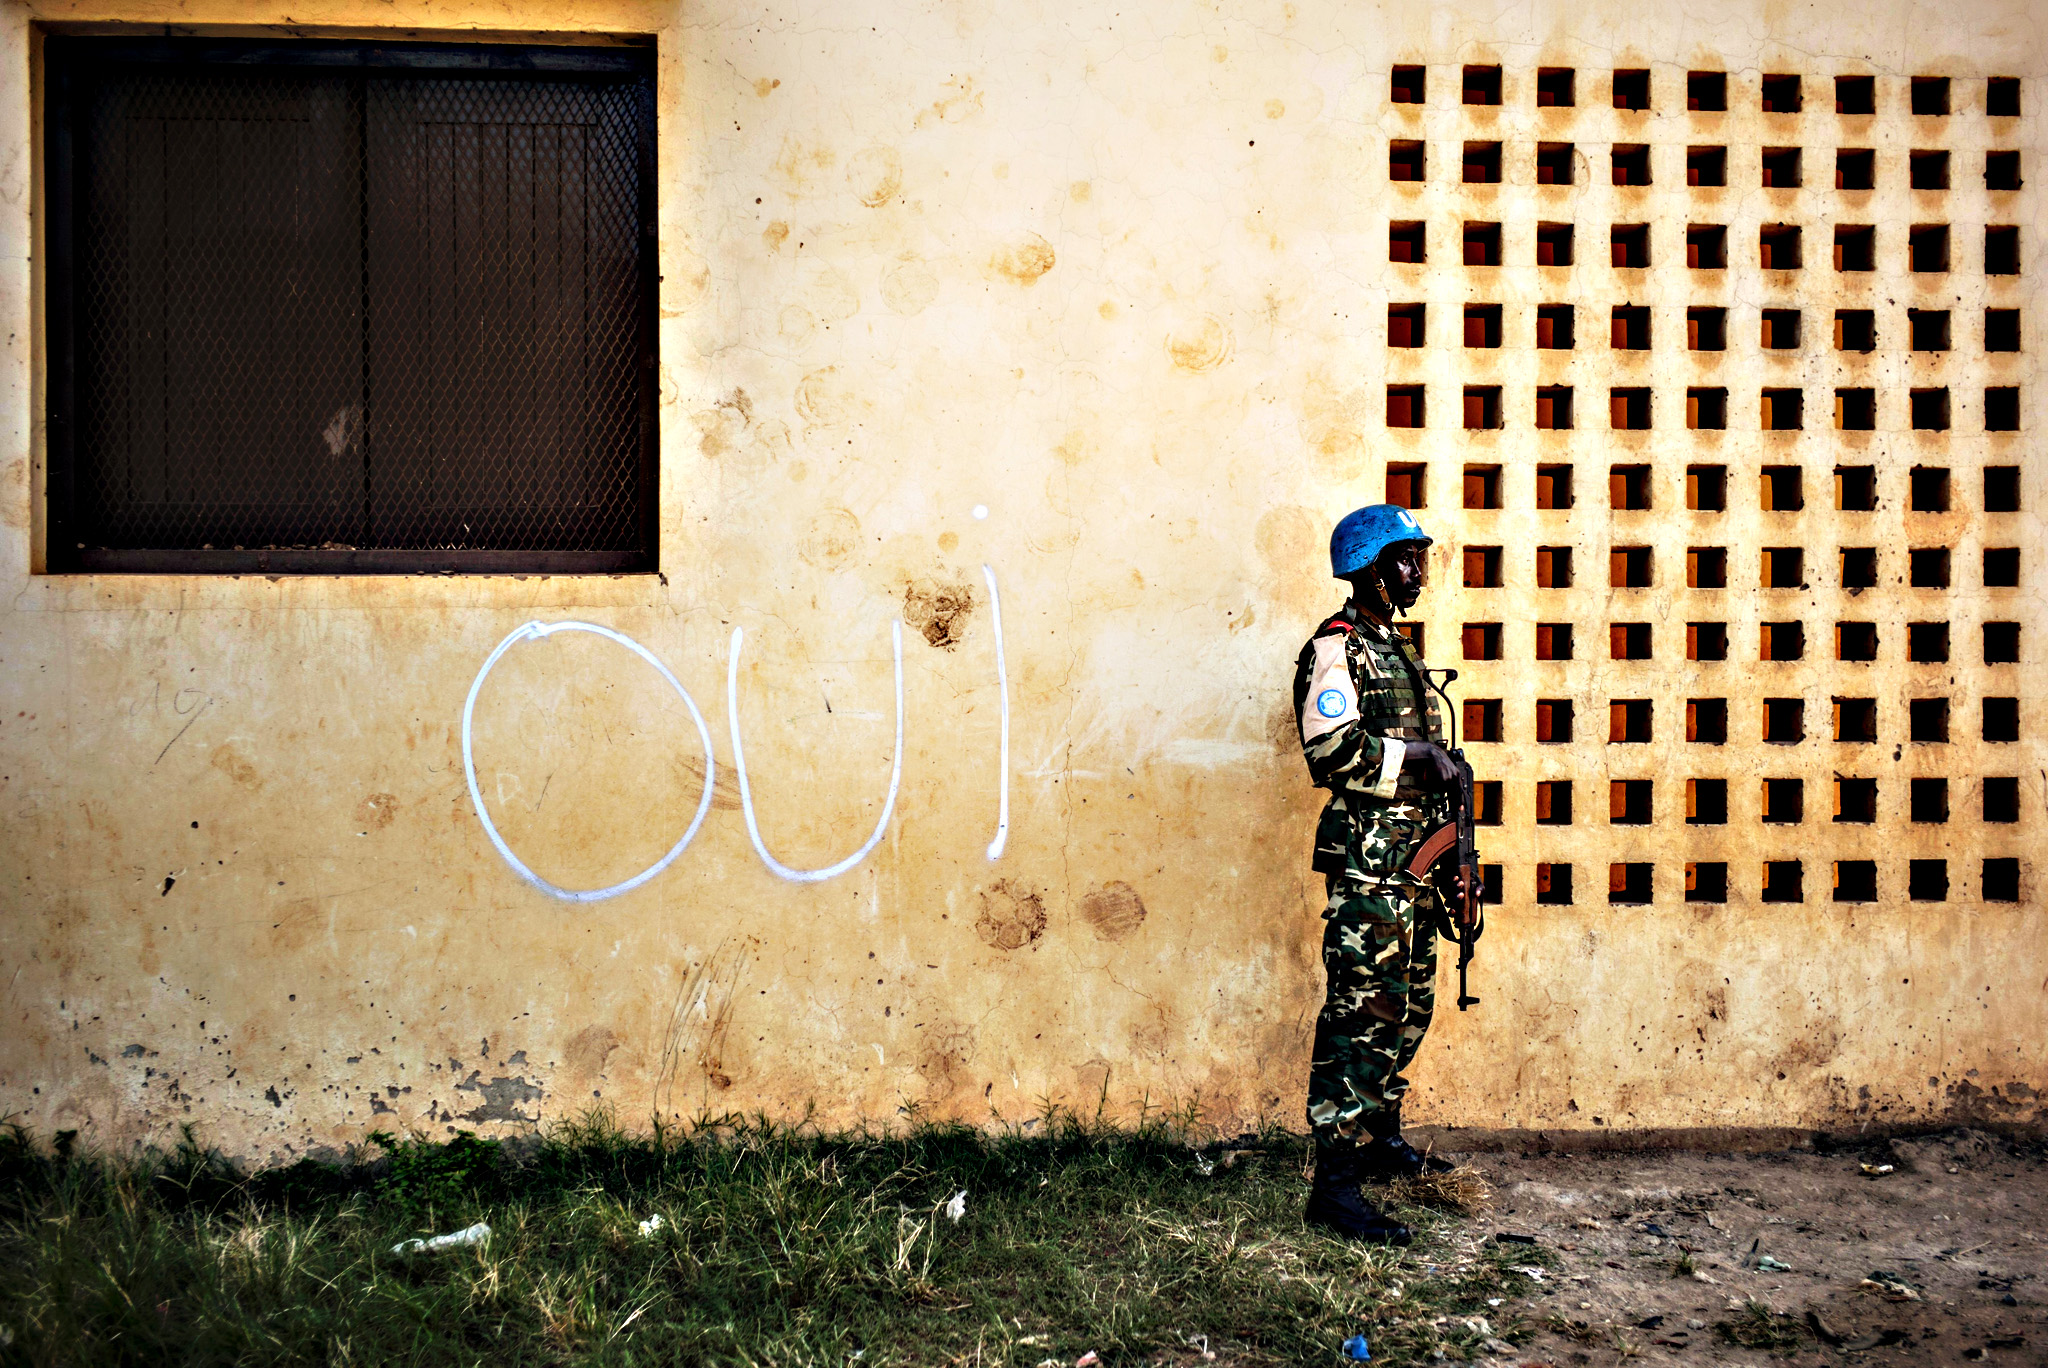 """Oui"" (Yes) is seen written on the walls of a polling station, where a soldier of the UN peacekeeping force MINUSCA contingent is on guard on December 14, 2015. Another two people died overnight in the Central African Republic capital Bangui, the Red Cross said on December 14, bringing the death toll from unrest sparked by a constitutional referendum to five. Clashes involving rocket launchers and machine guns disrupted the polling on December 13 in the Muslim-majority PK-5 district of Bangui. The vote is seen as a test run for presidential and parliamentary elections due to take place December 27 to end more than two years of conflict between the Muslim and Christian militias."